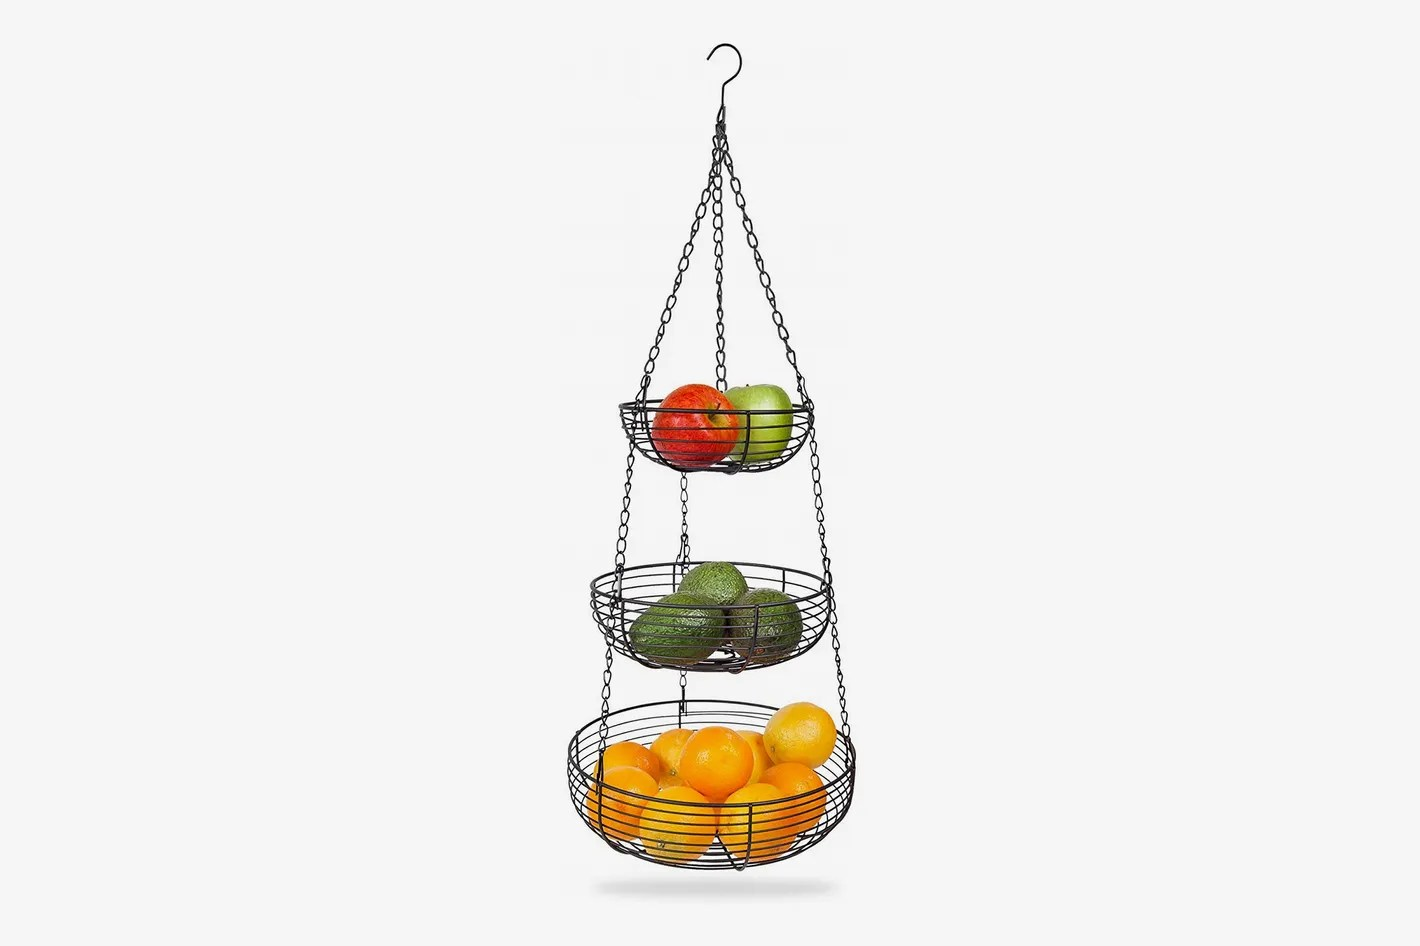 Wire Fruit Bowls Best Tiered Hanging Fruit Baskets 2018